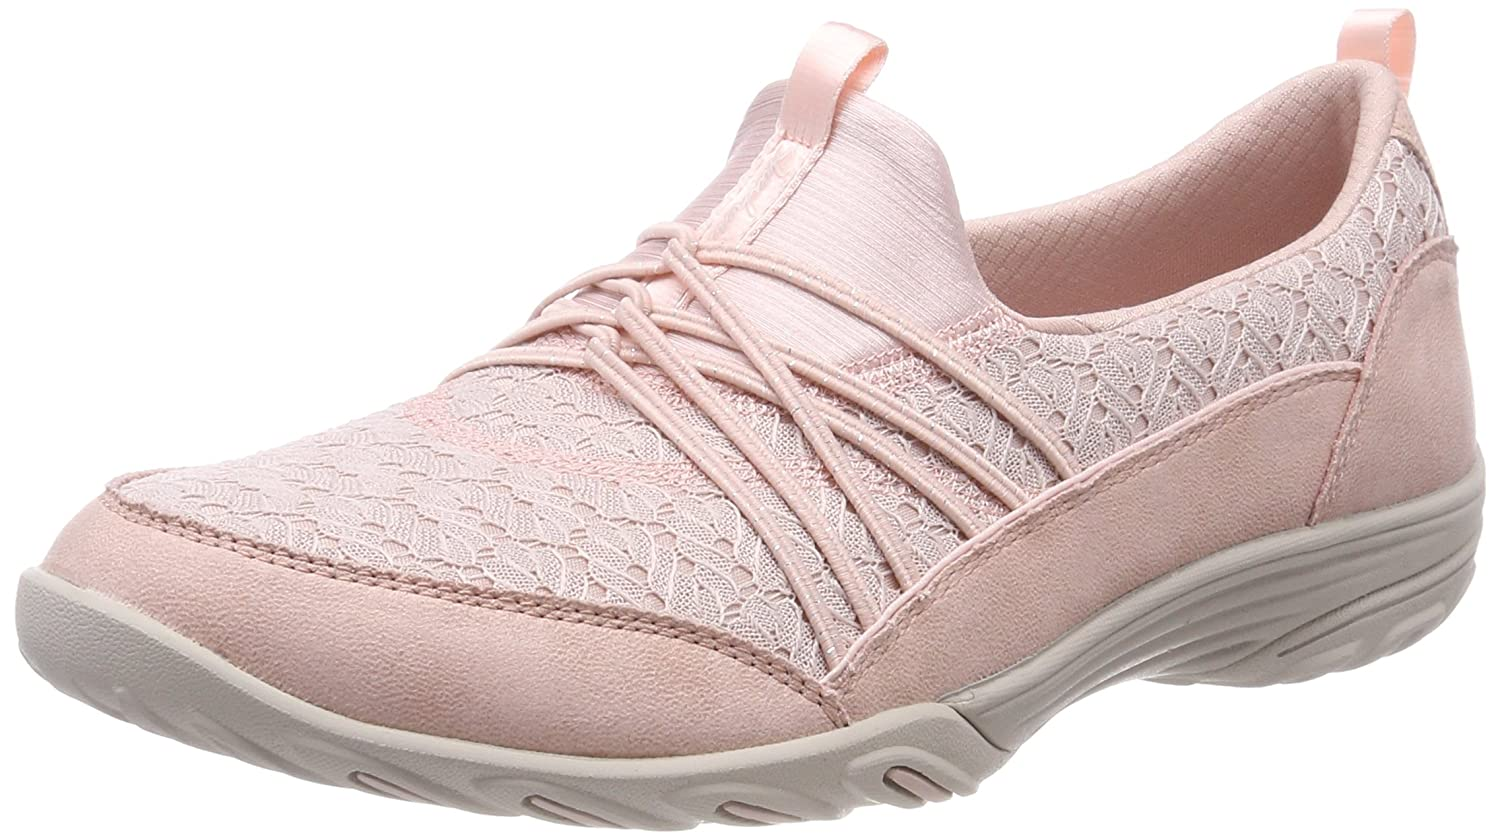 Skechers Women's Empress-Wide-Awake Sneaker B076TP29FF 5 B(M) US|Pink